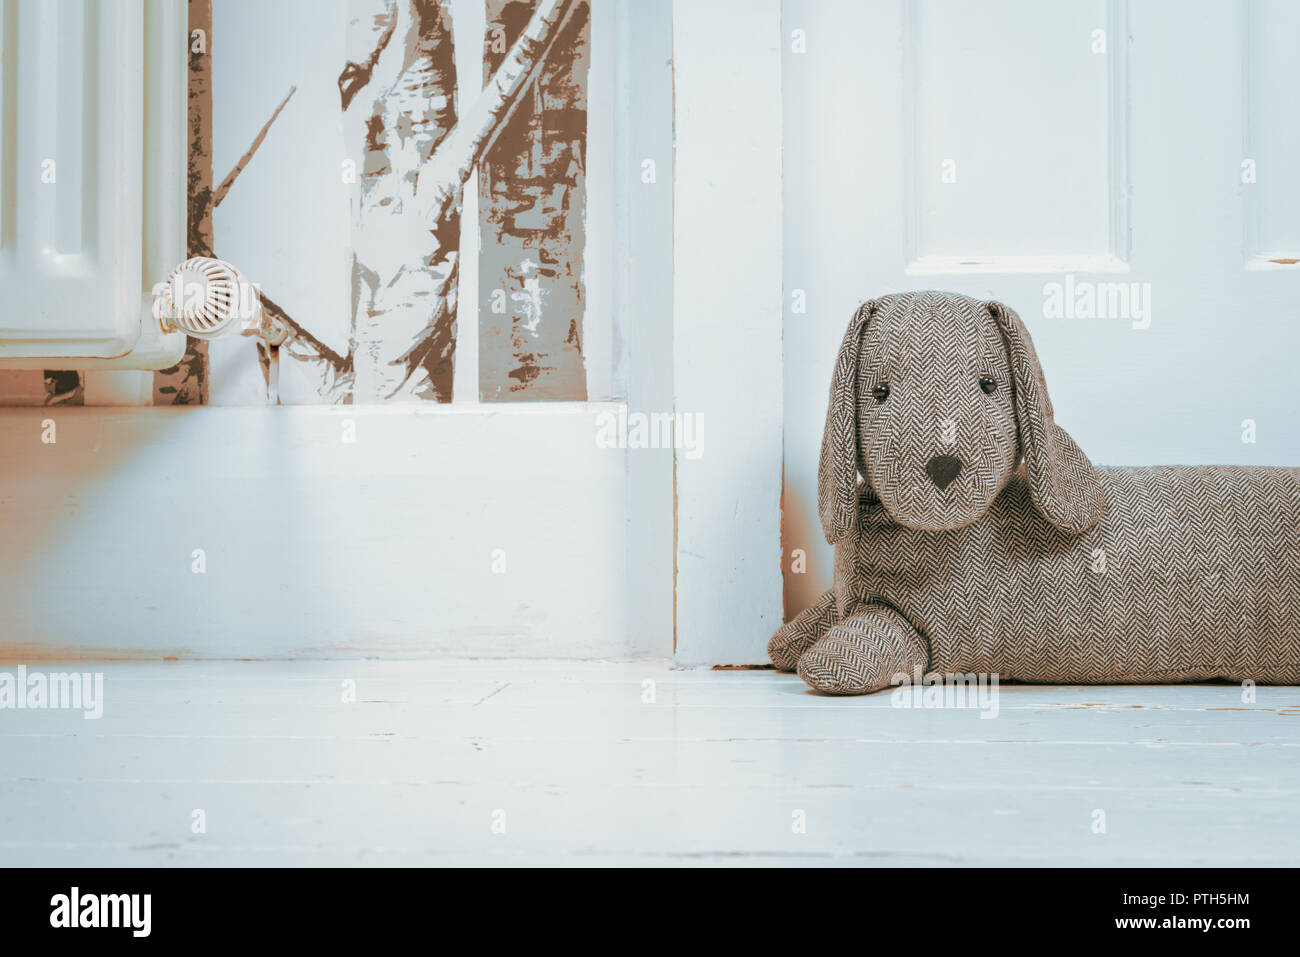 A dog shaped draught excluder next to a door and a radiator. - Stock Image